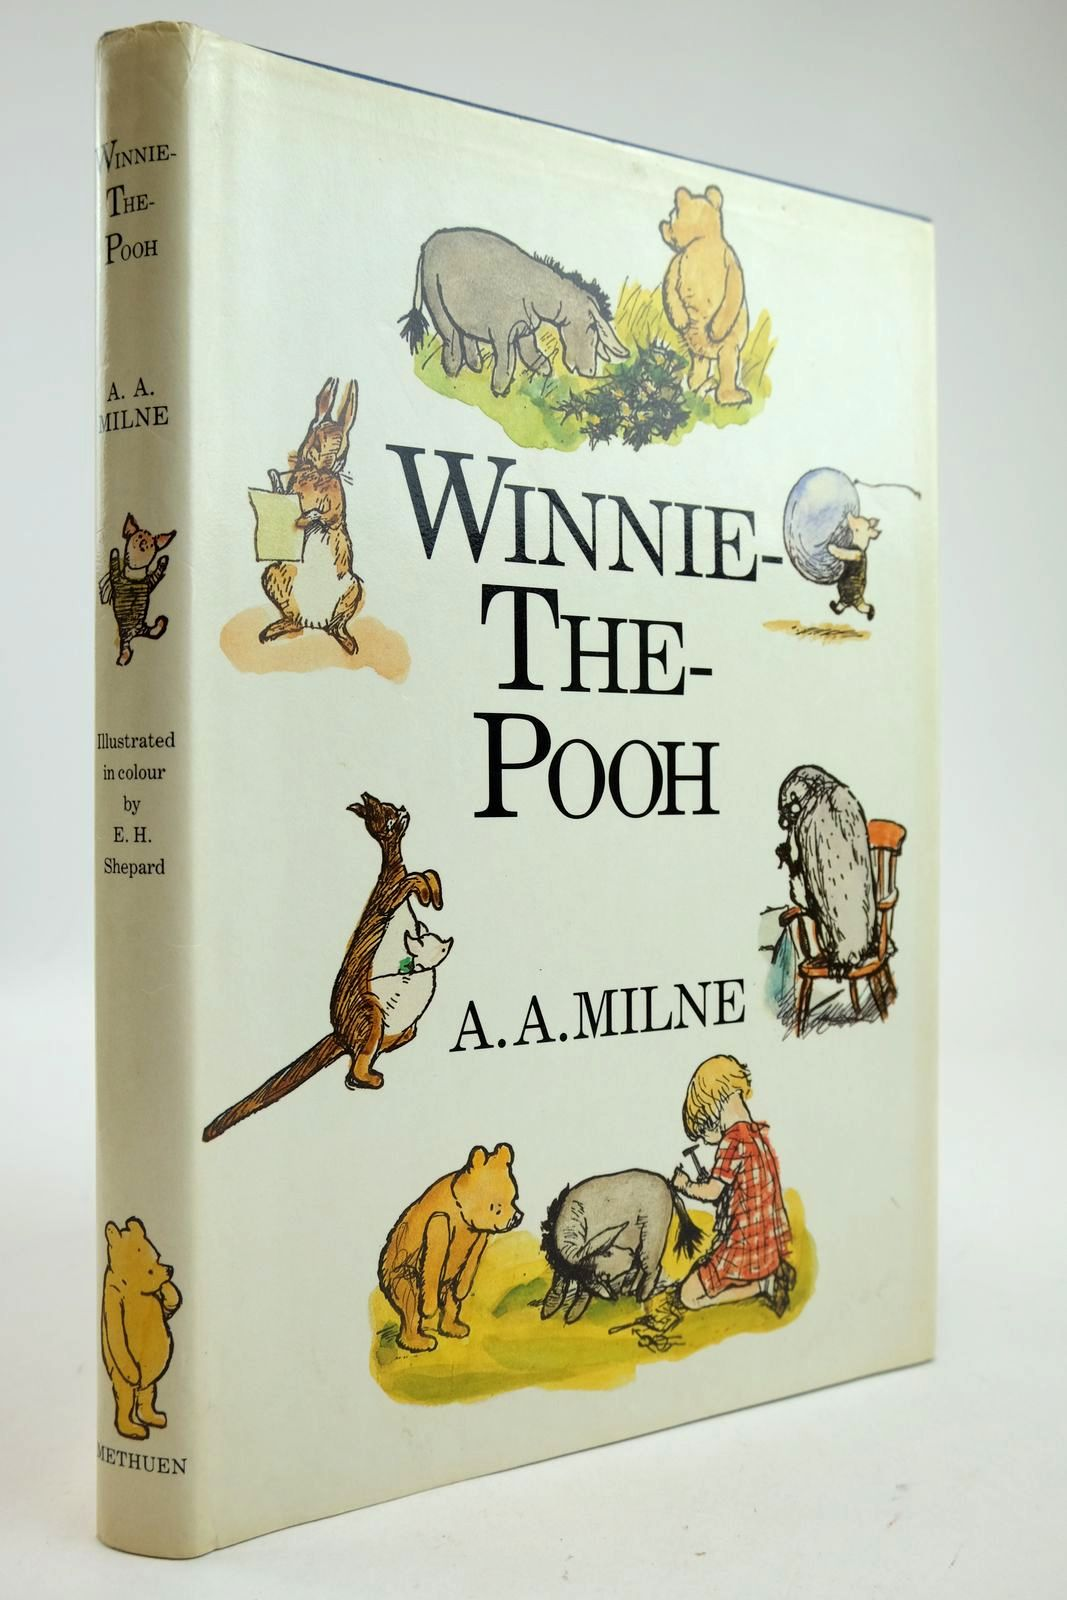 Photo of WINNIE-THE-POOH written by Milne, A.A. illustrated by Shepard, E.H. published by Methuen Children's Books (STOCK CODE: 2132883)  for sale by Stella & Rose's Books